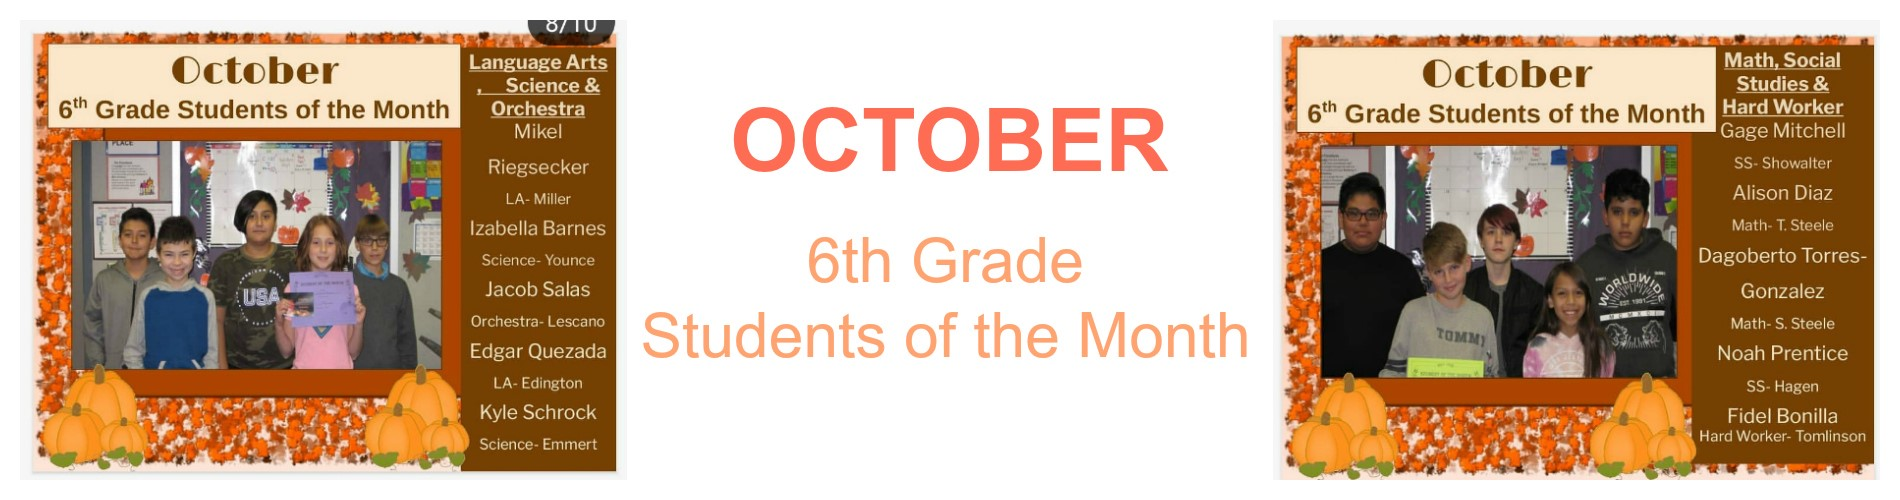 6th-grade students of the October month